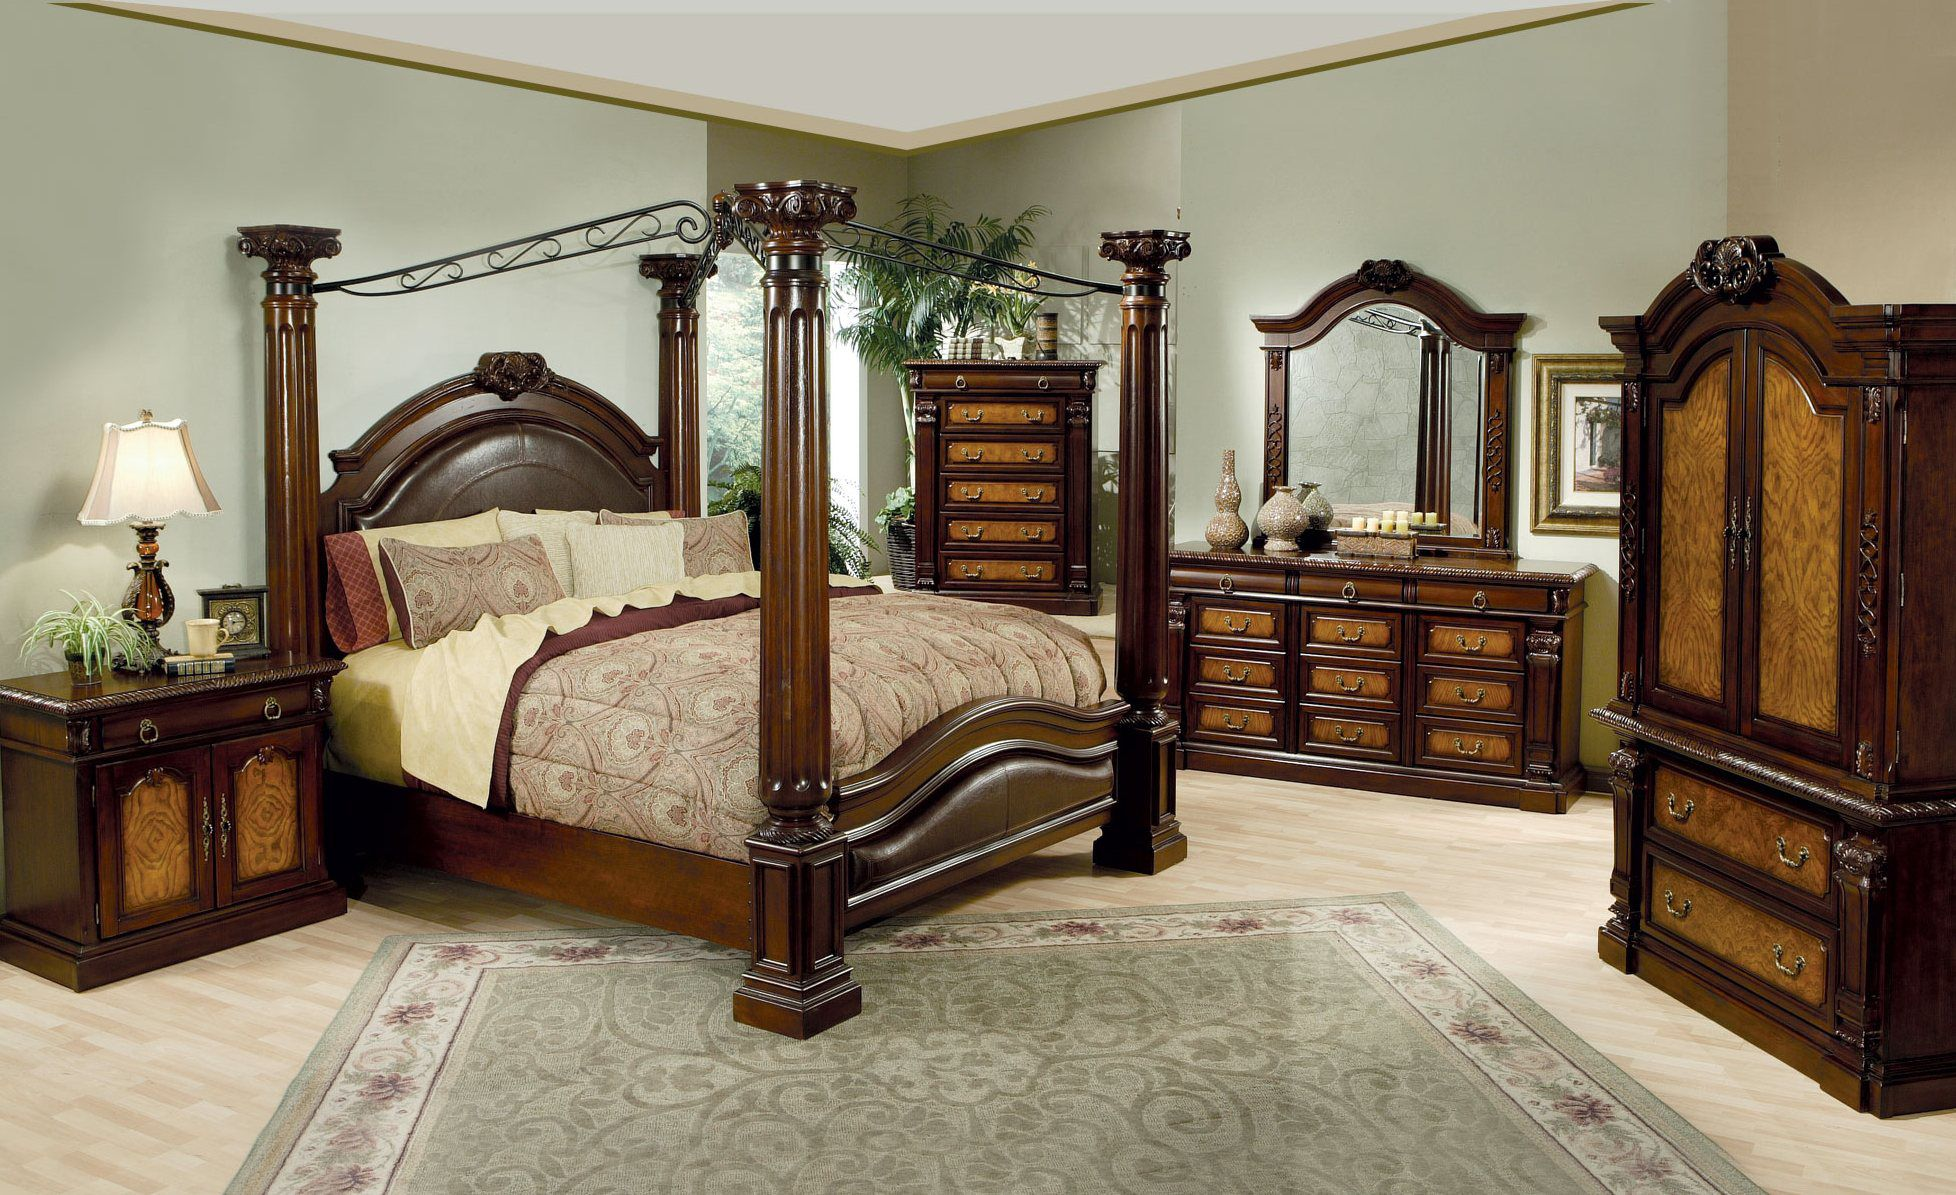 How To Buy King Size Canopy Bed Artmakehome